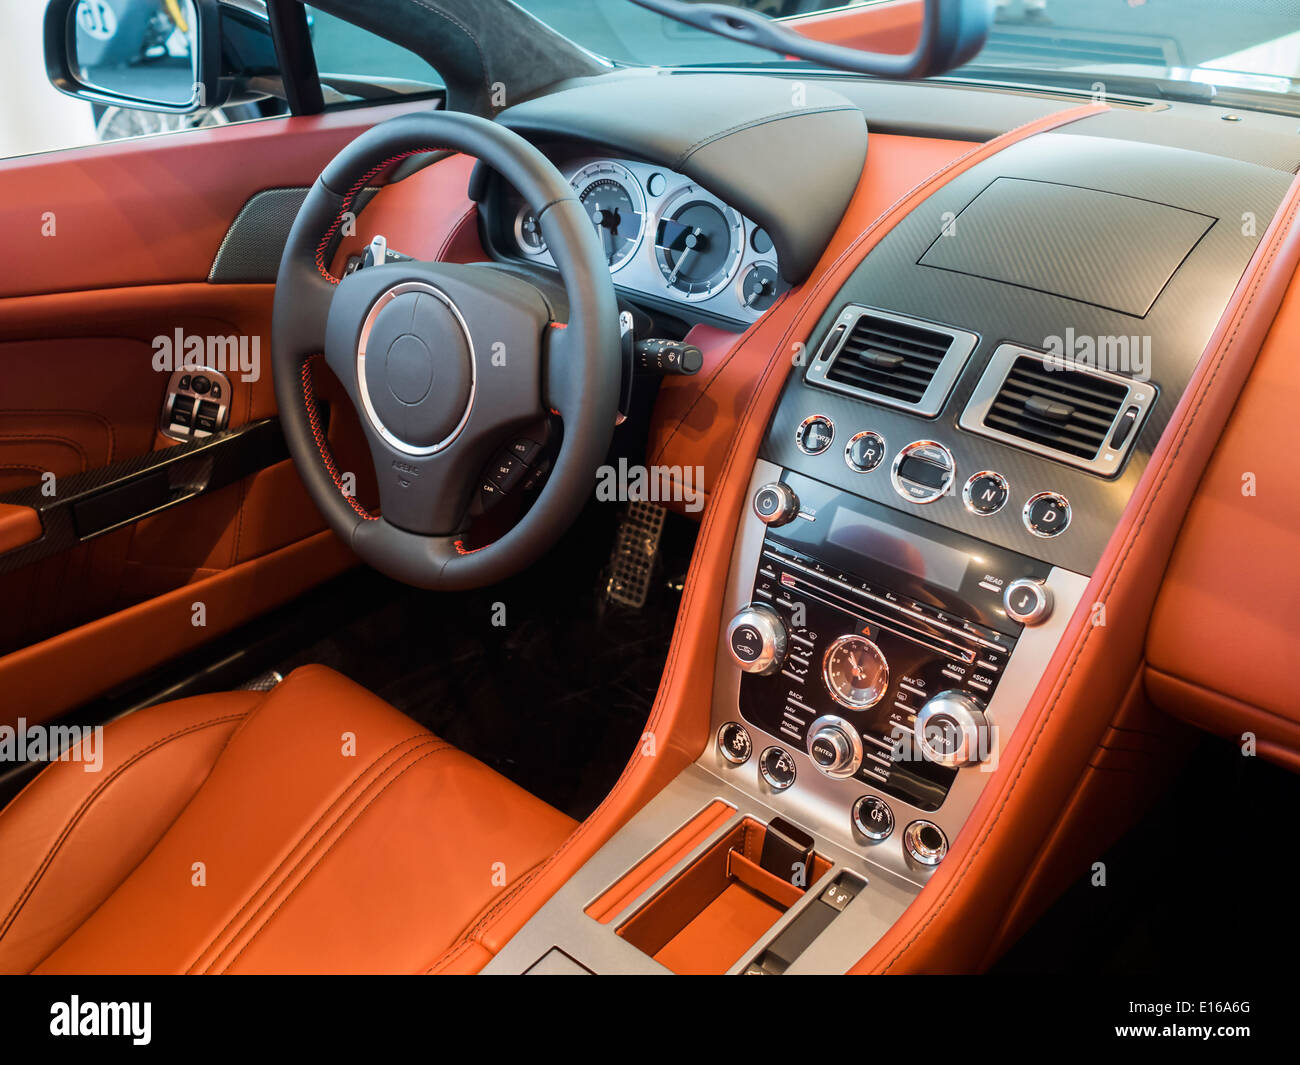 interior cockpit/dashboard of an expensive sports car lined in leather and carbon fiber. - Stock Image